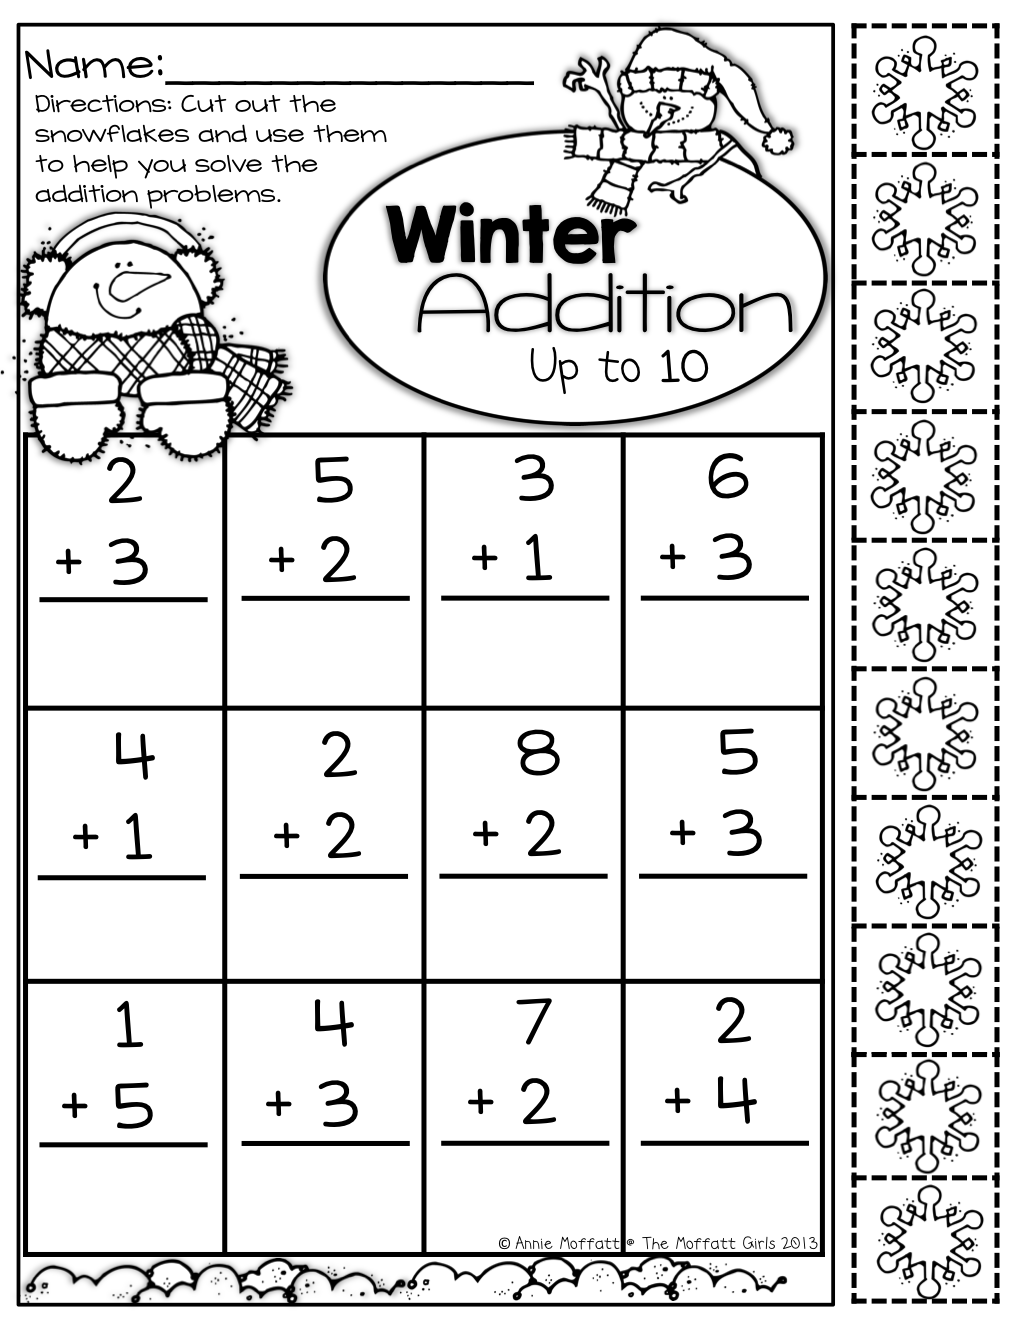 Simple Addition Up To 10 With Built In Snowflake Manipulatives Kindergarten Math Simple Math Math Sheets [ 1325 x 1024 Pixel ]